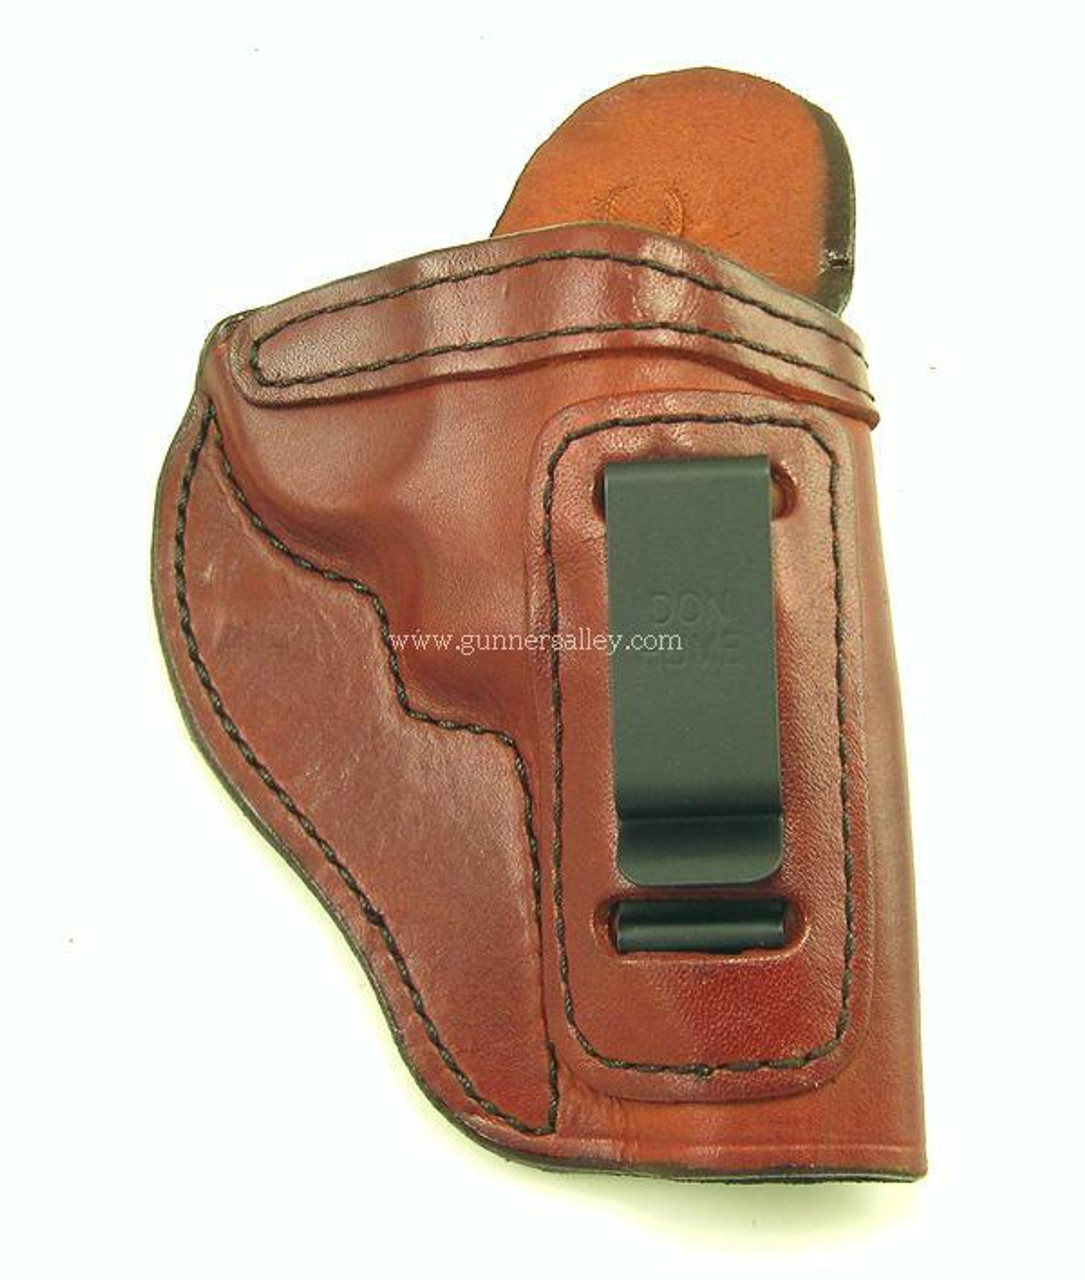 """Front View - Saddle Brown - Right Hand - Shown for a S&W J Frame 3"""" Revolver for Demonstration Purposes"""